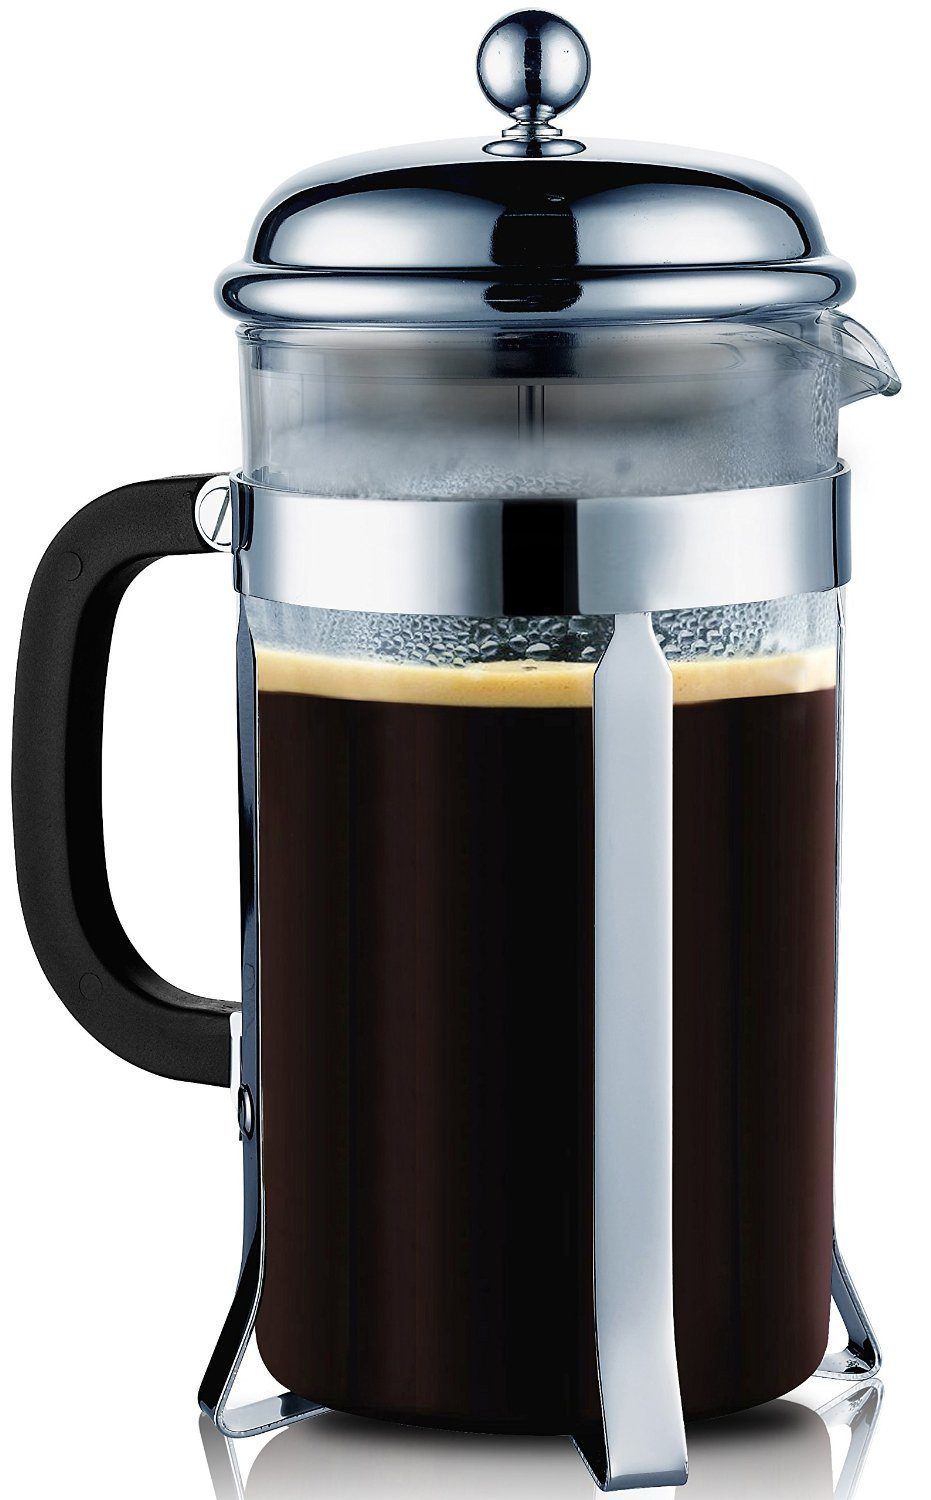 french press coffee maker review sterlingpro coffee maker. Black Bedroom Furniture Sets. Home Design Ideas